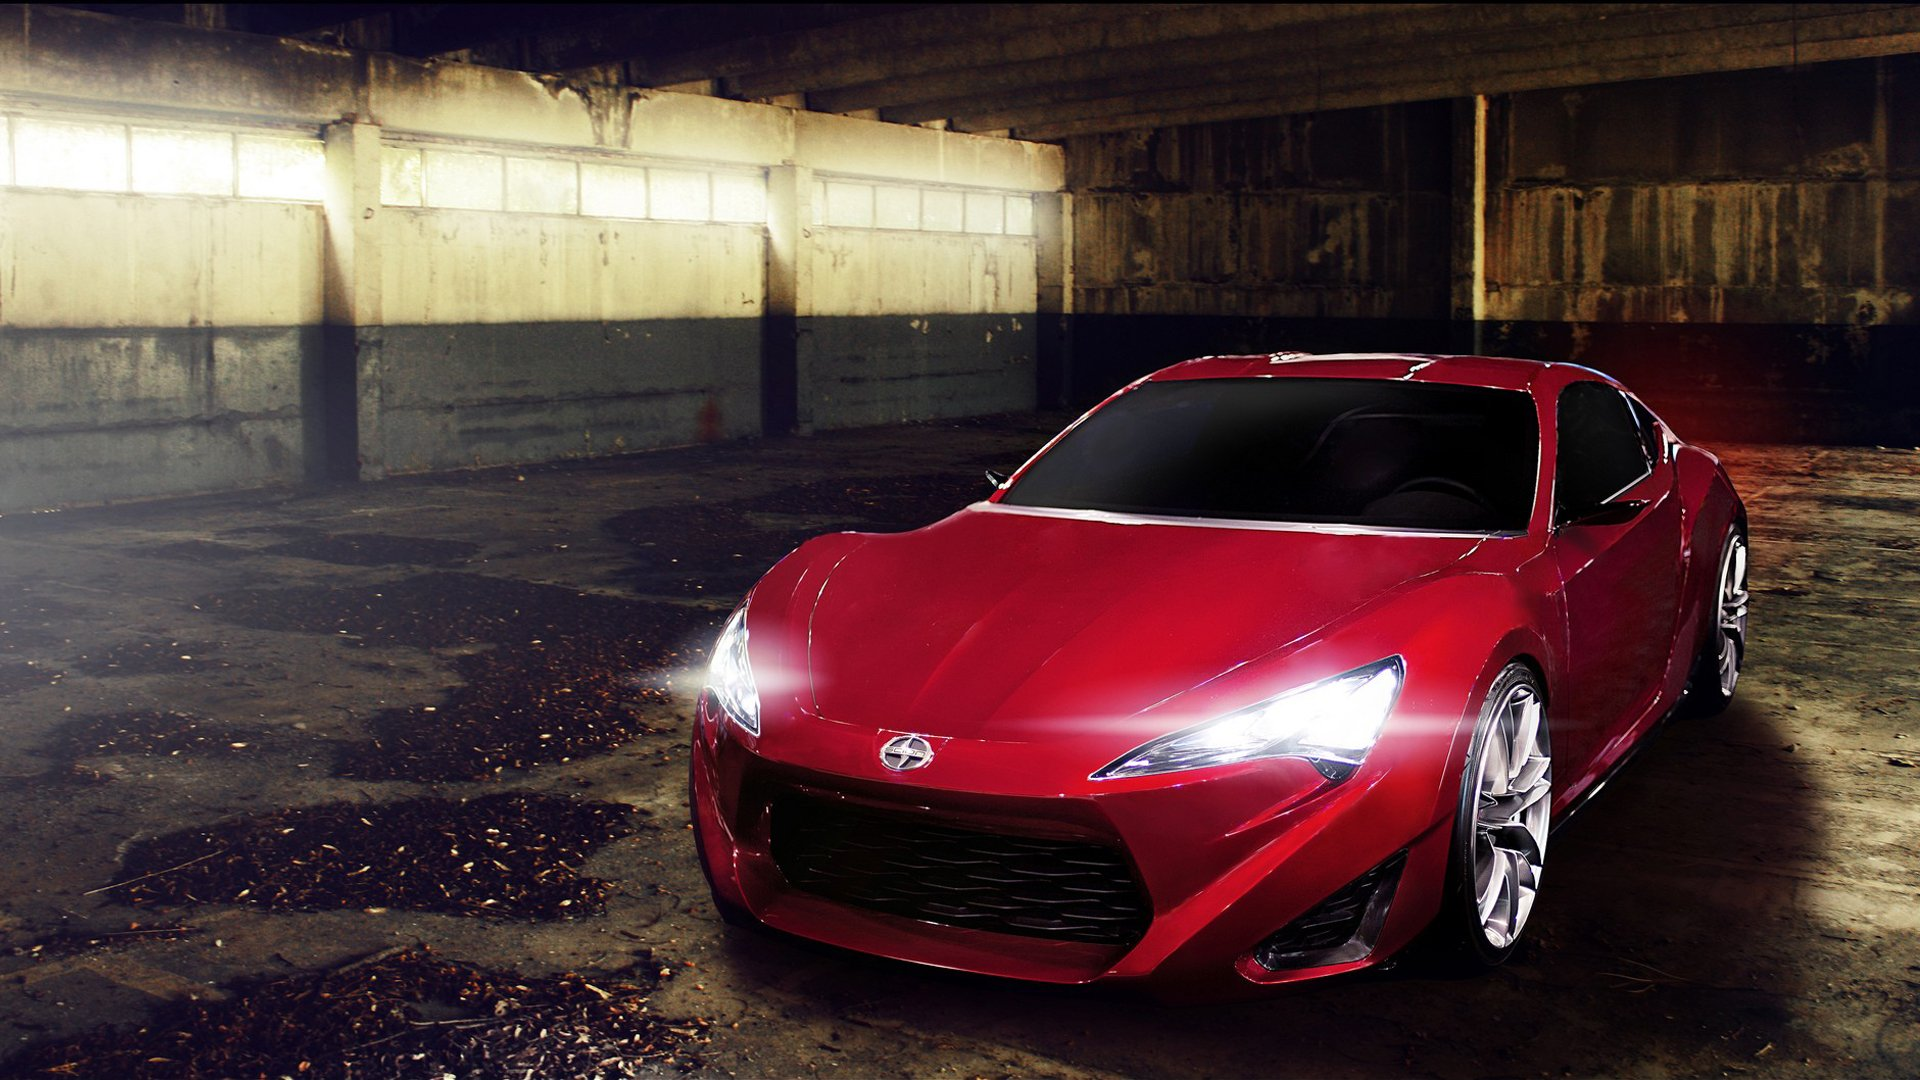 9 Fantastic Hd Scion Frs Car Wallpapers Hdwallsource Com